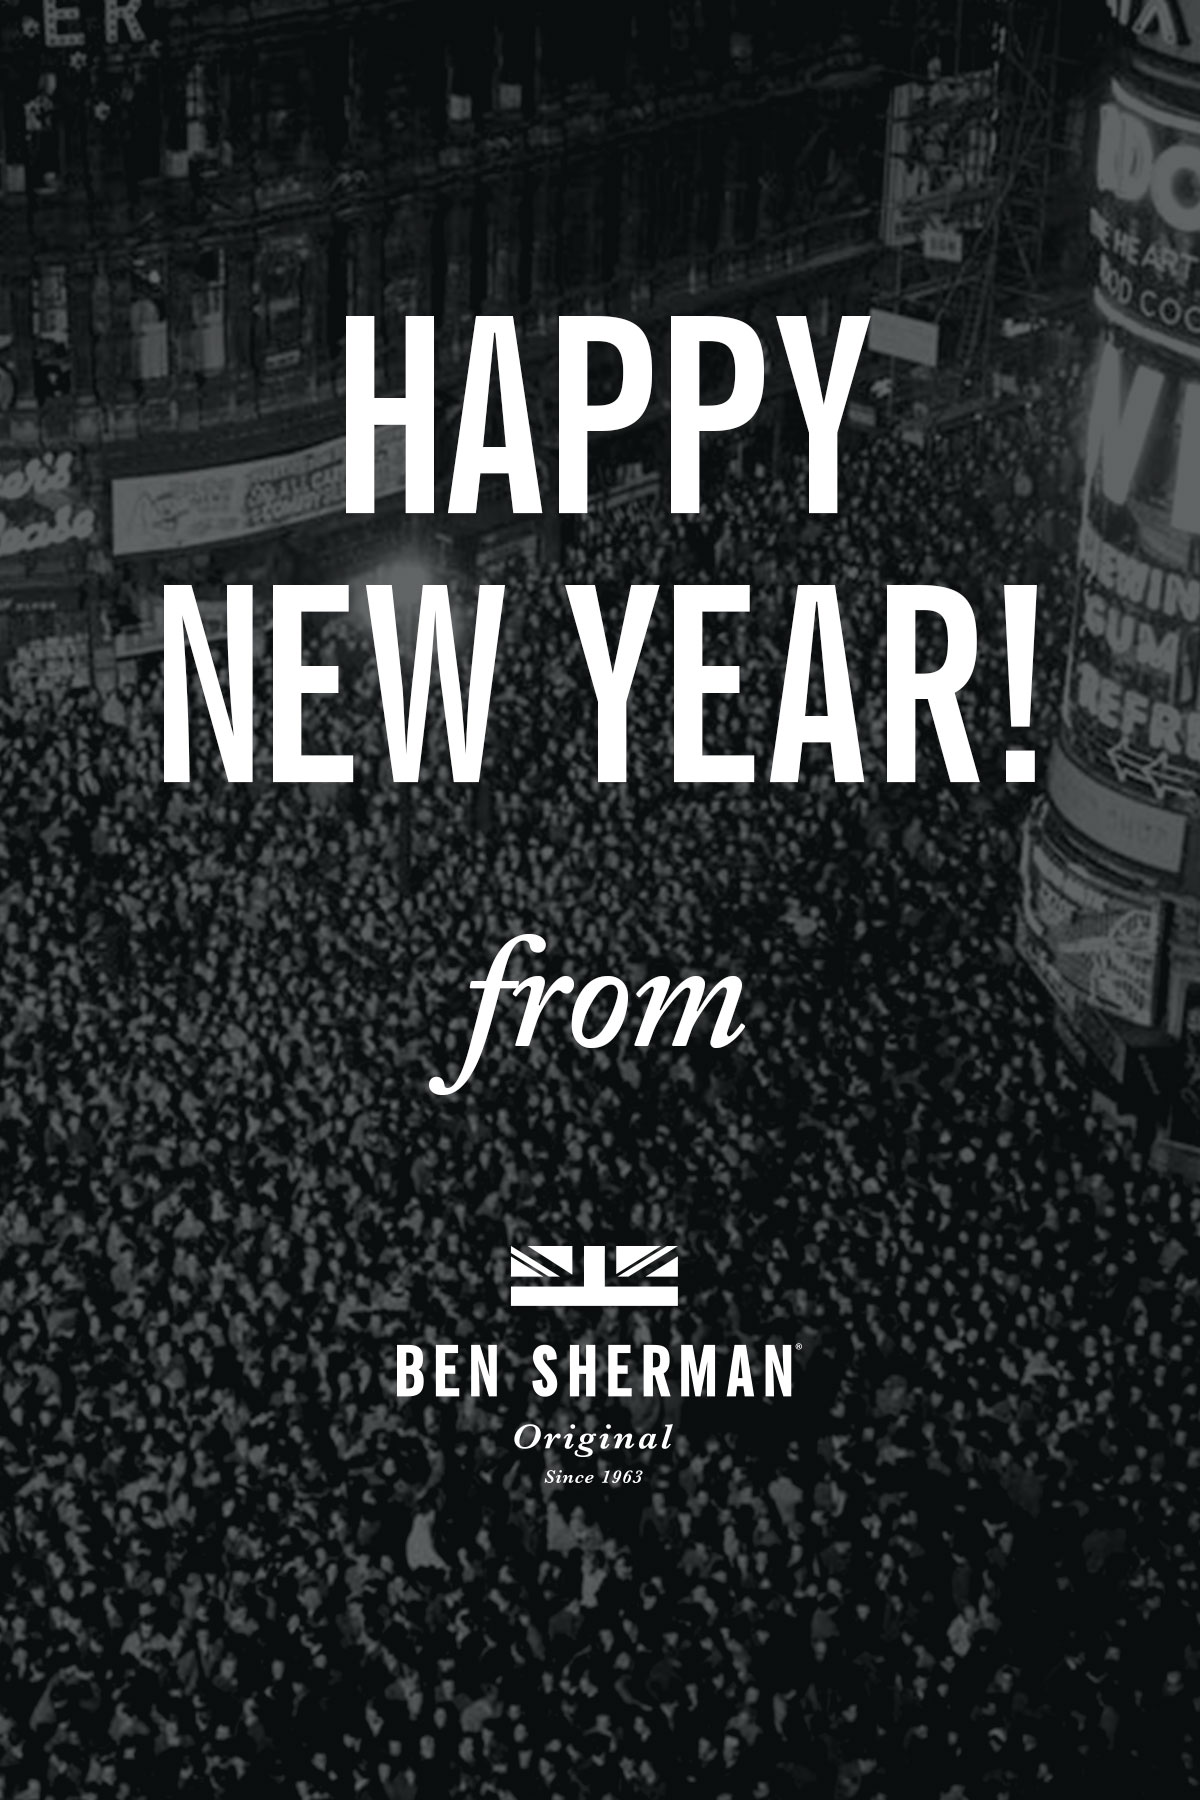 Happy New Year! from Ben Sherman